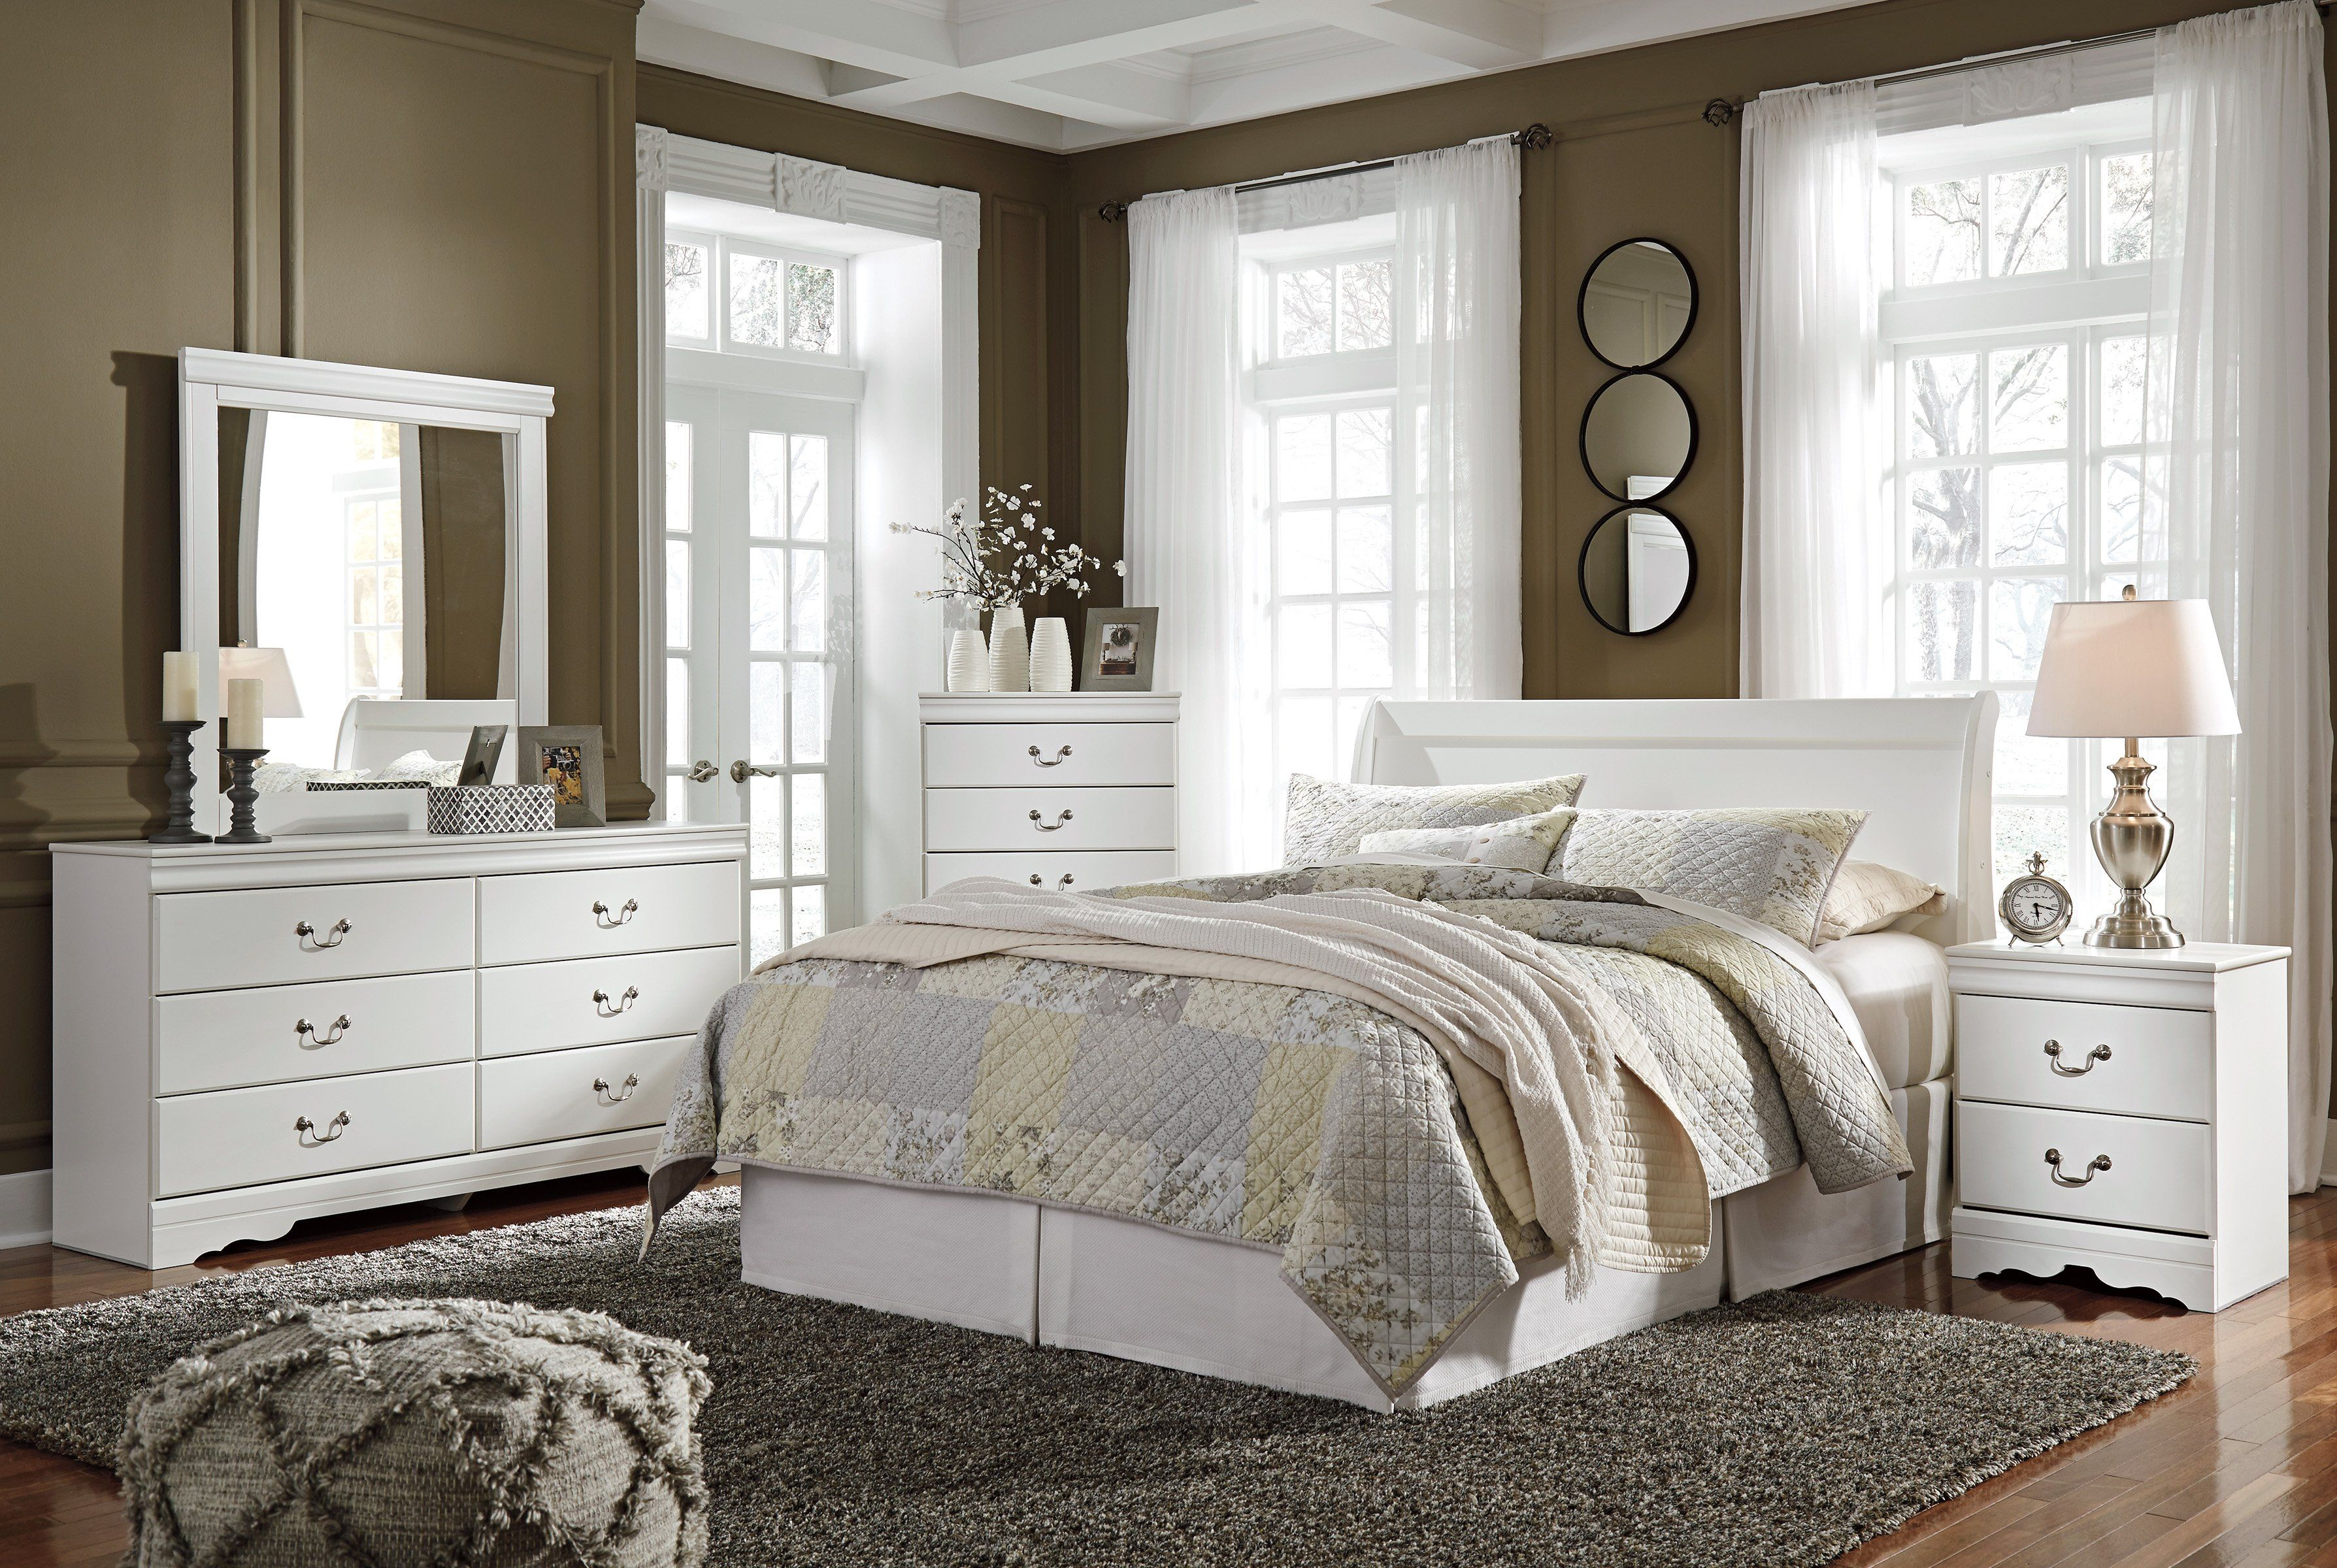 Anarasia Sleigh Bed White Bedroom sets queen, Ashley